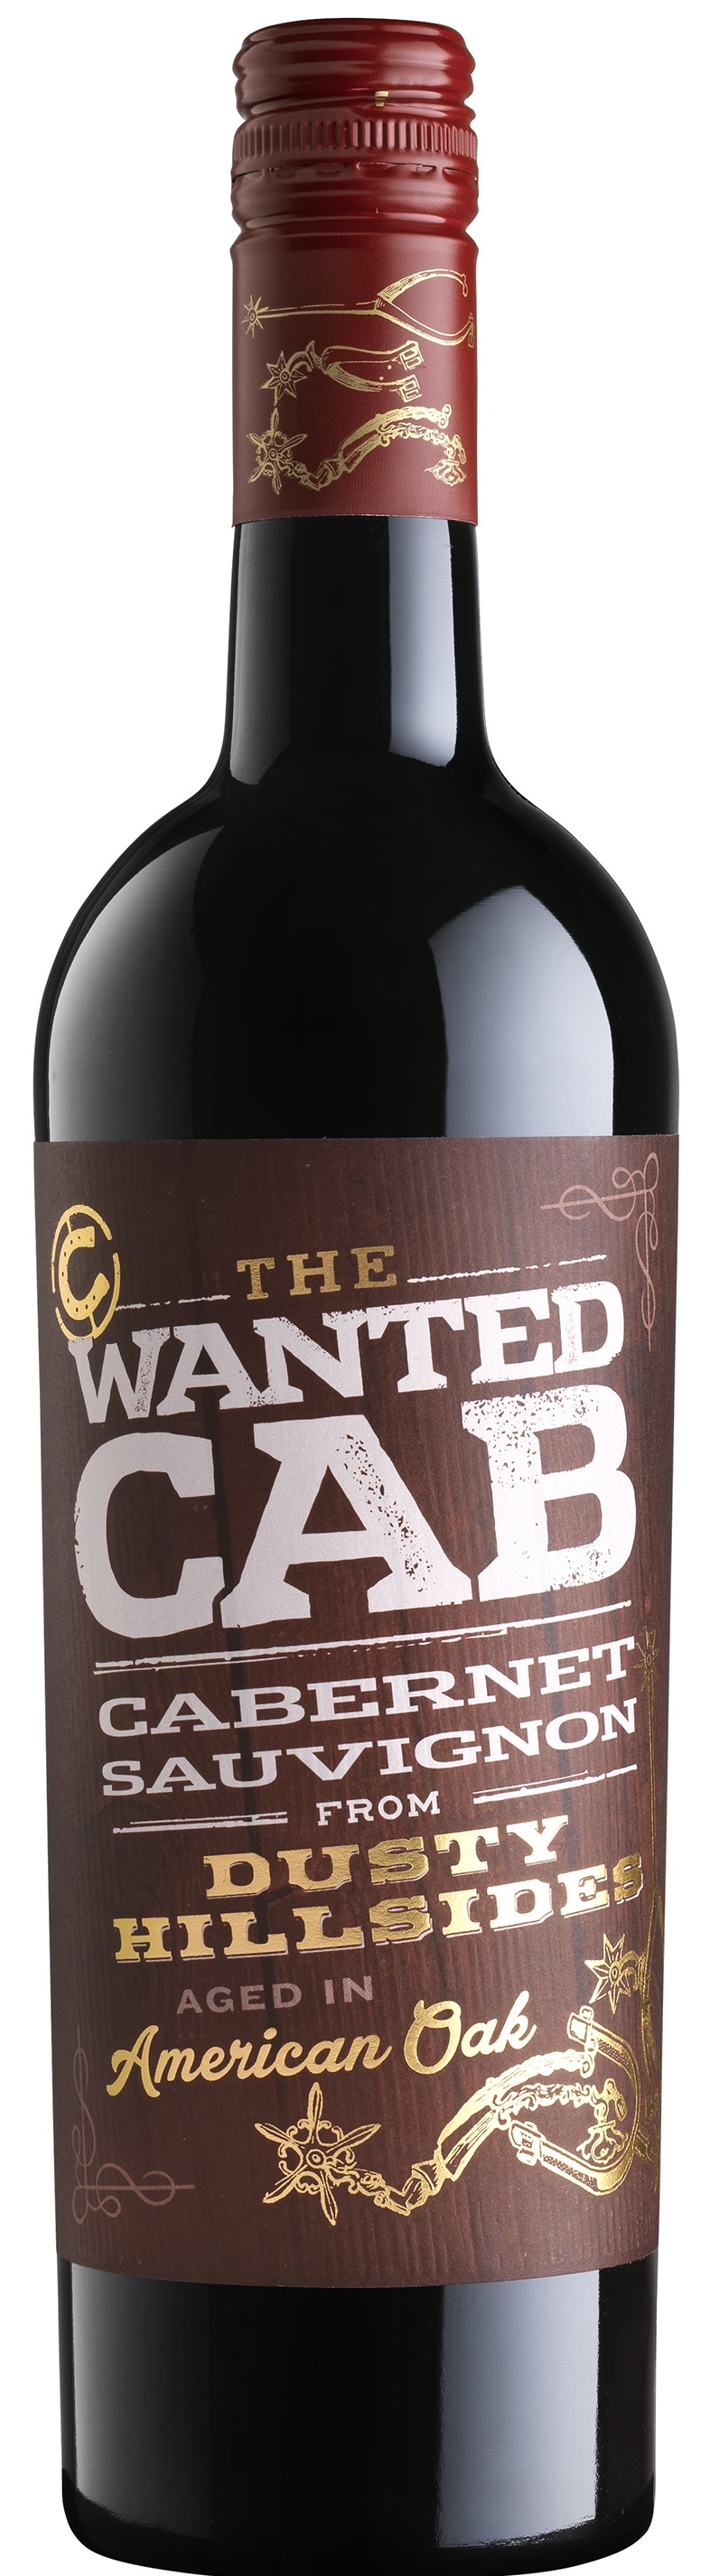 The Wanted Cab Cabernet Sauvignon2